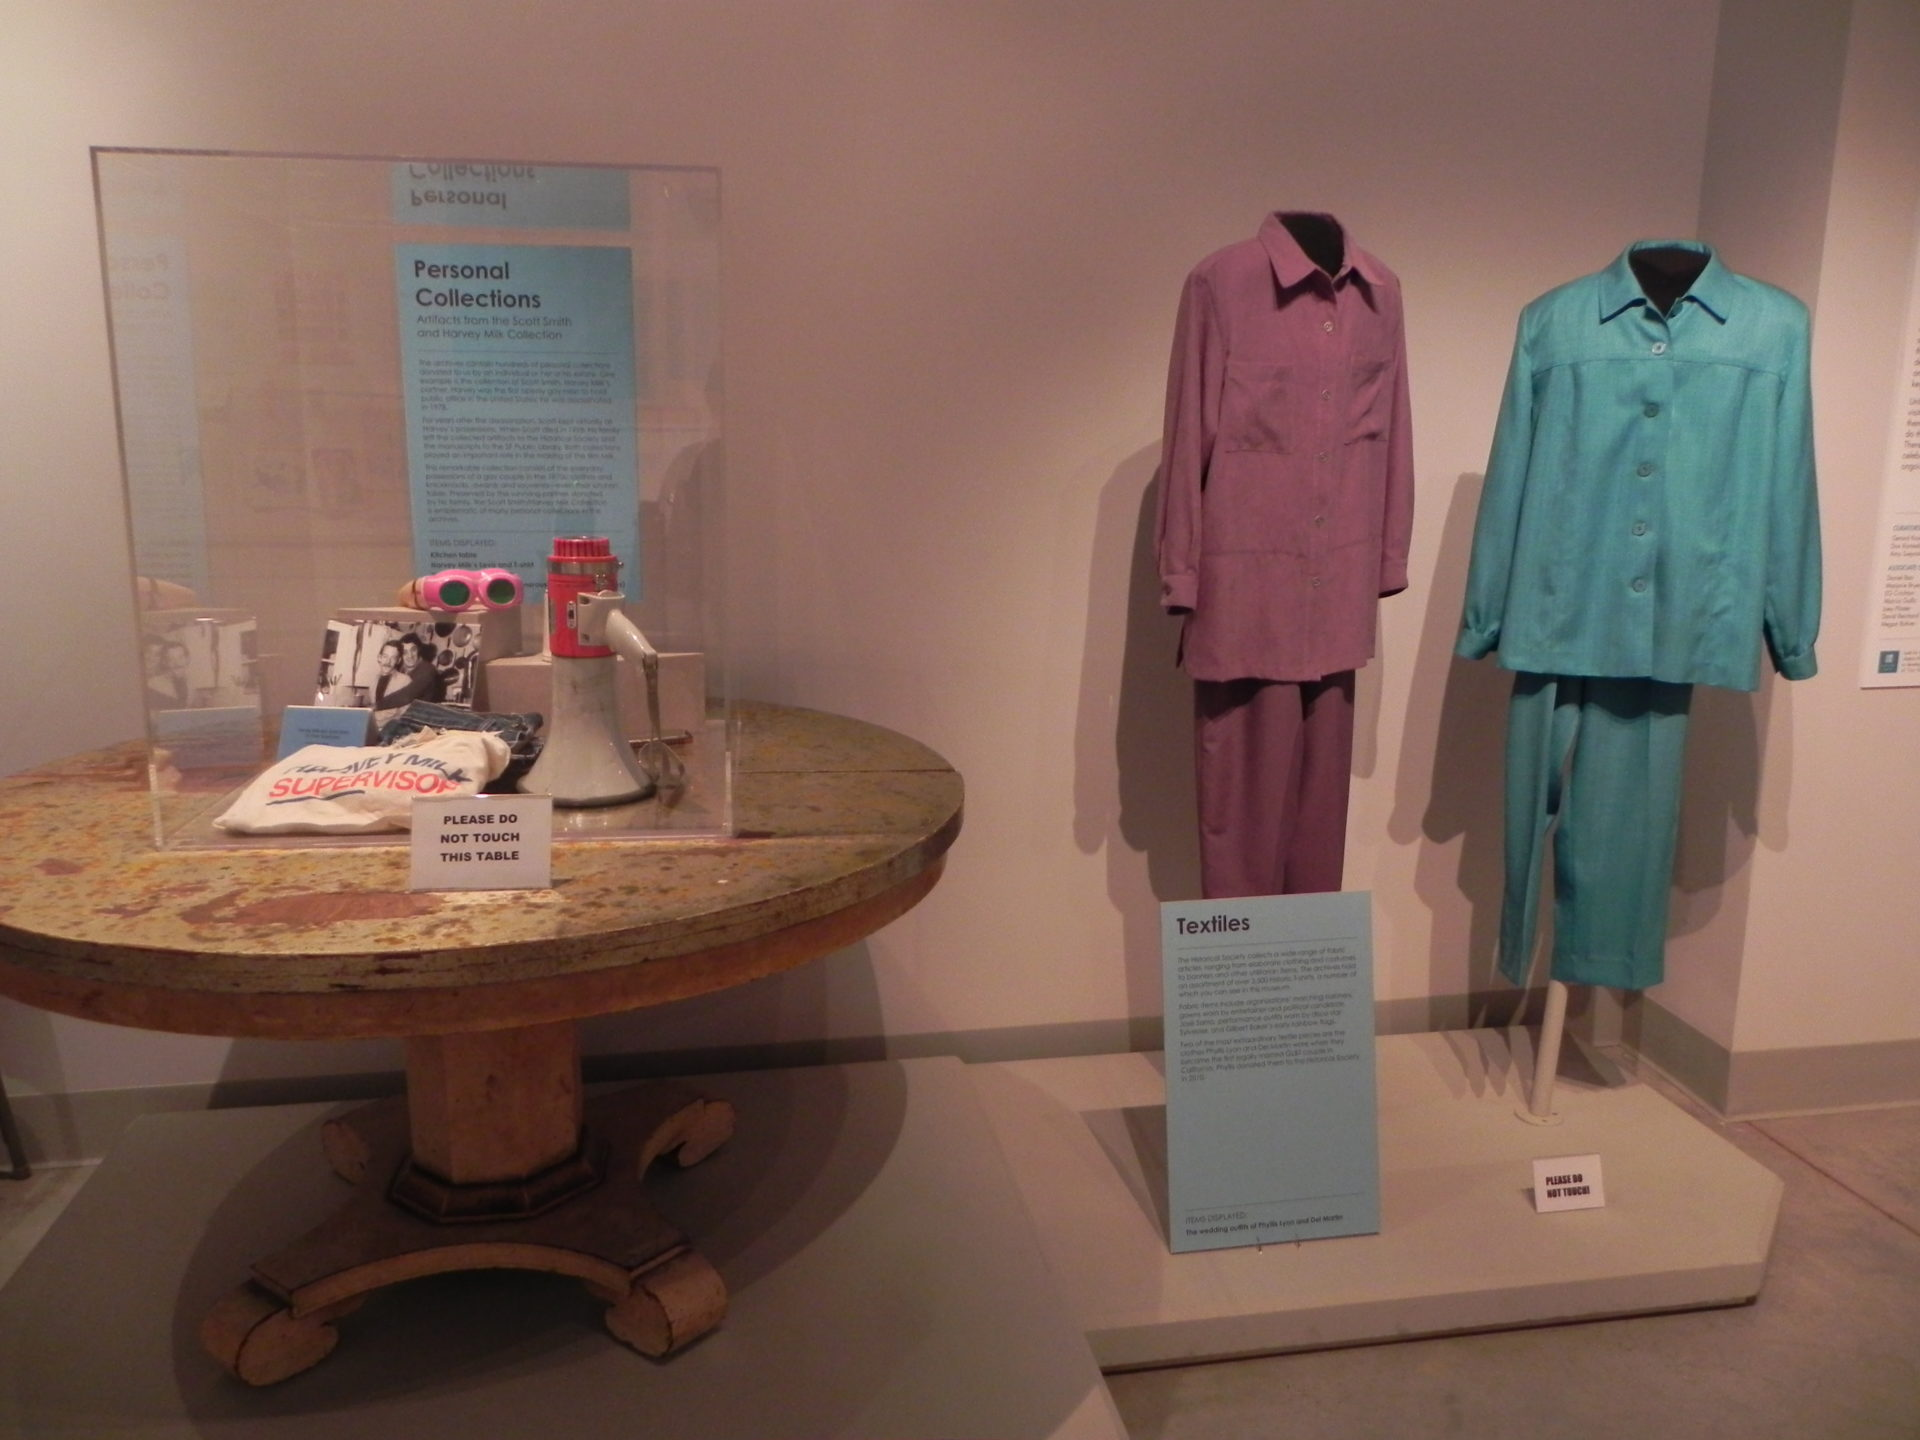 【Museums Link Asia-Pacific】GLBT History Museum: Balancing between Visibility and Diversity